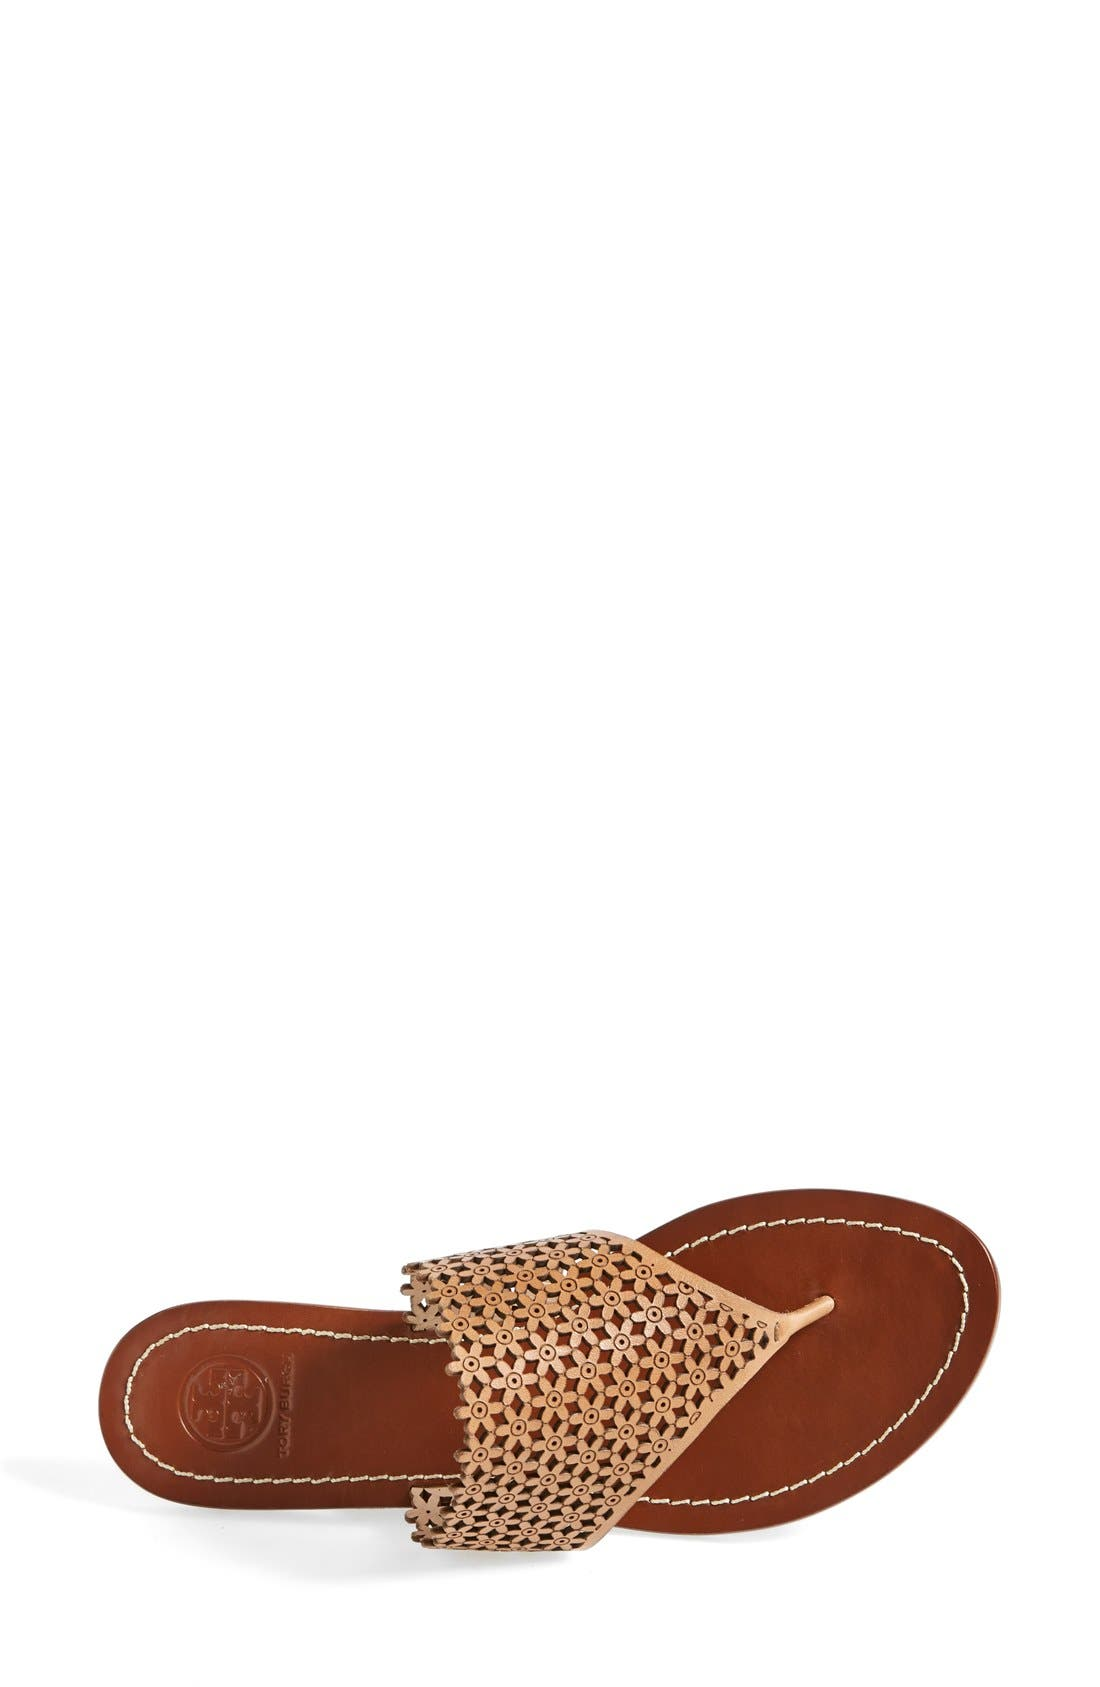 TORY BURCH,                             'Daisy' Perforated Sandal,                             Alternate thumbnail 2, color,                             671